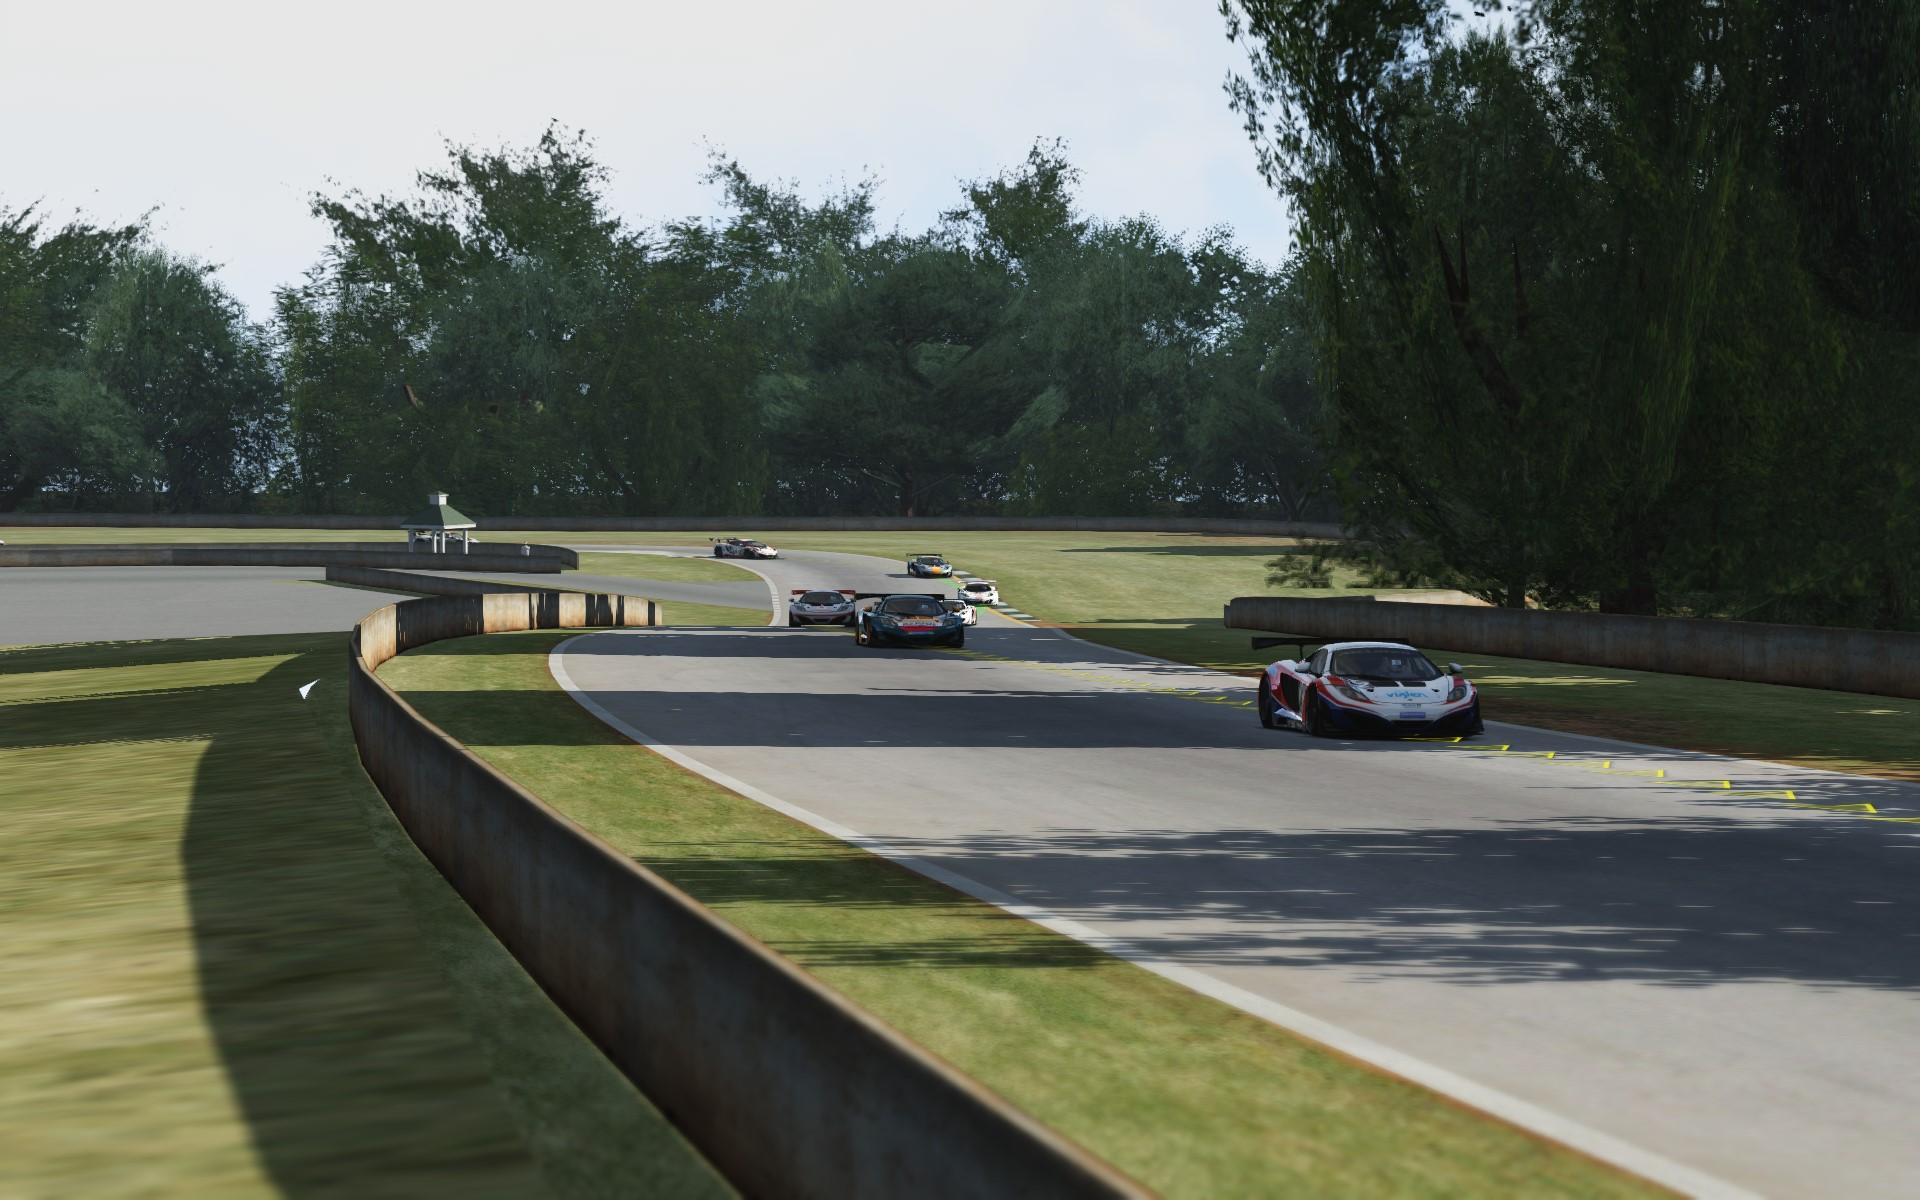 Screenshot_mclaren_mp412c_gt3_road atlanta_10-8-115-14-0-45.jpg